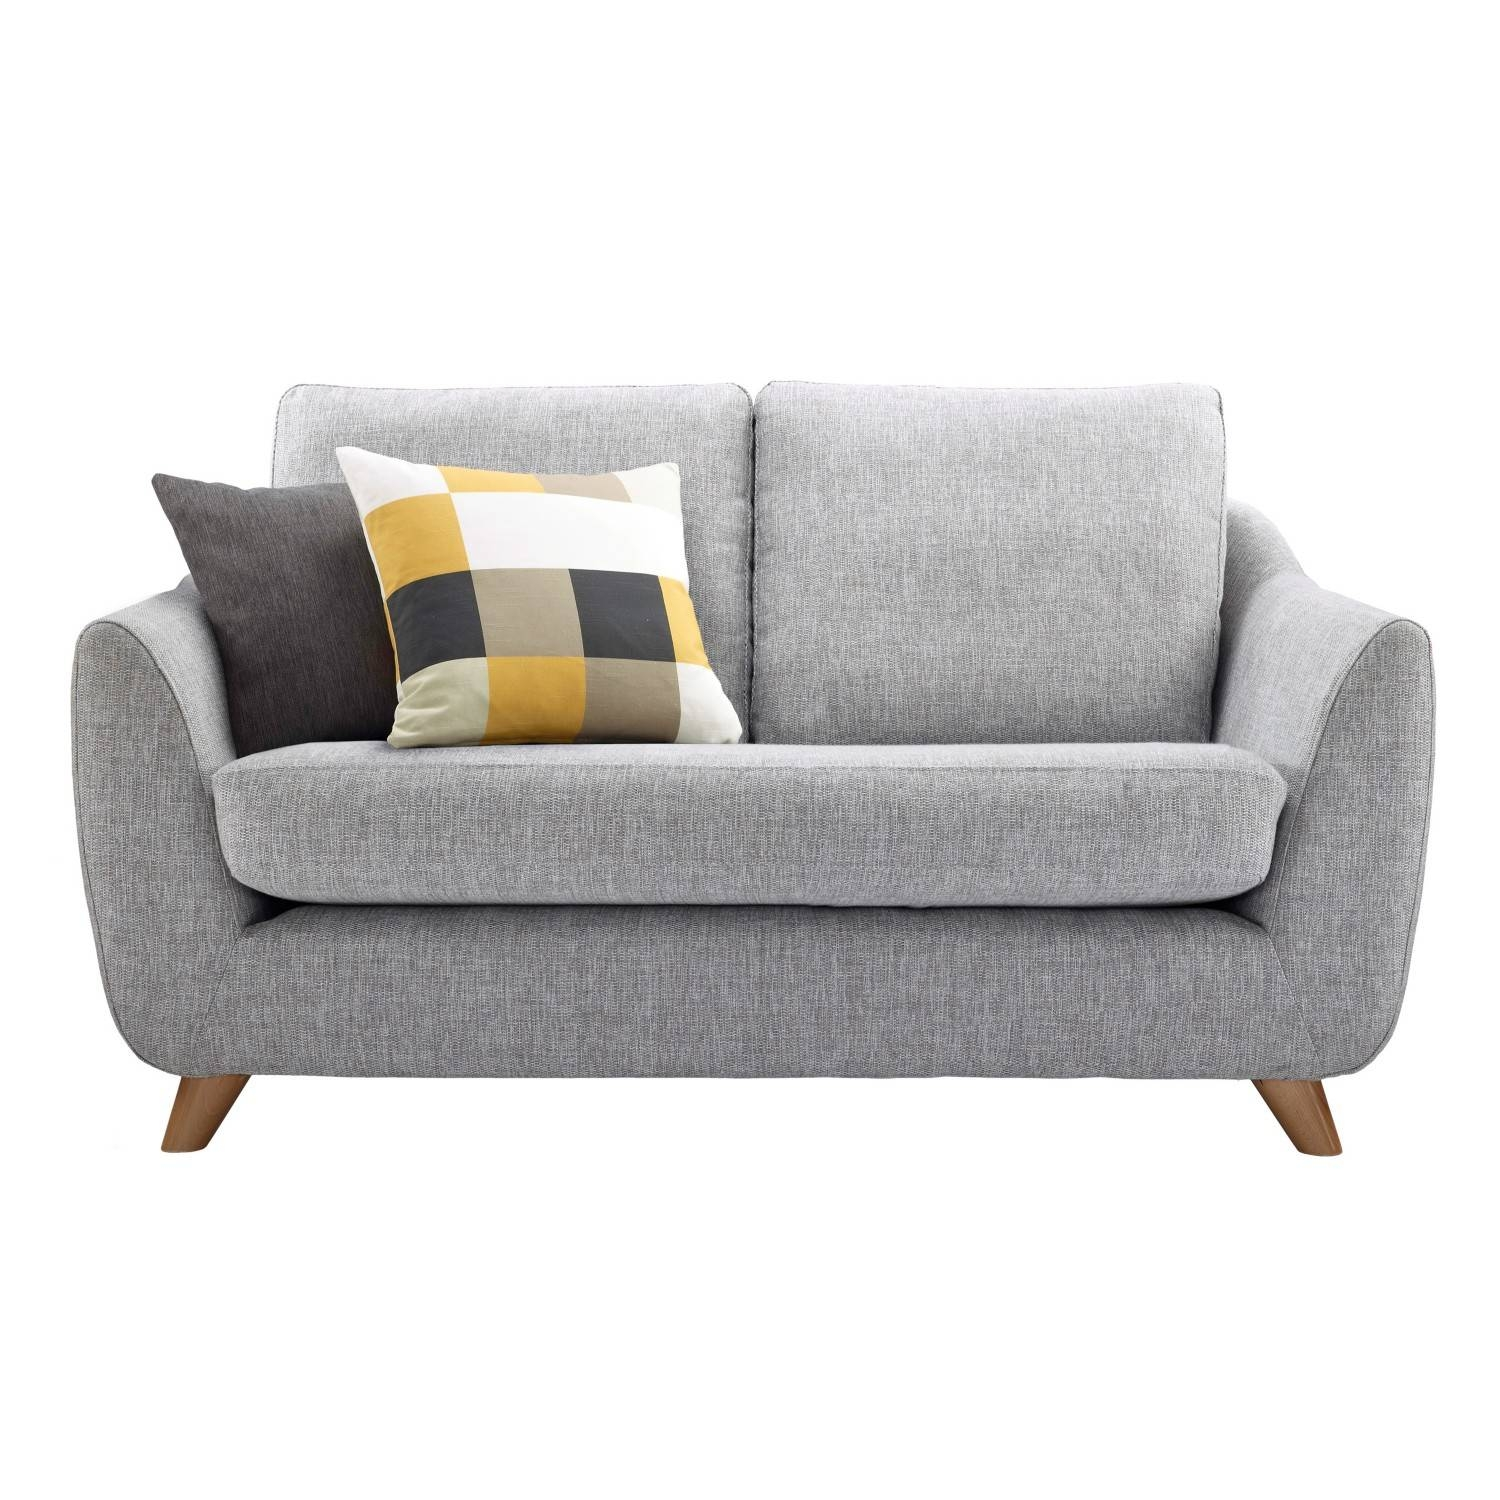 Furniture: Comfy Design Of Sears Sofa Bed For Lovely Home with Cushion Sofa Beds (Image 9 of 30)